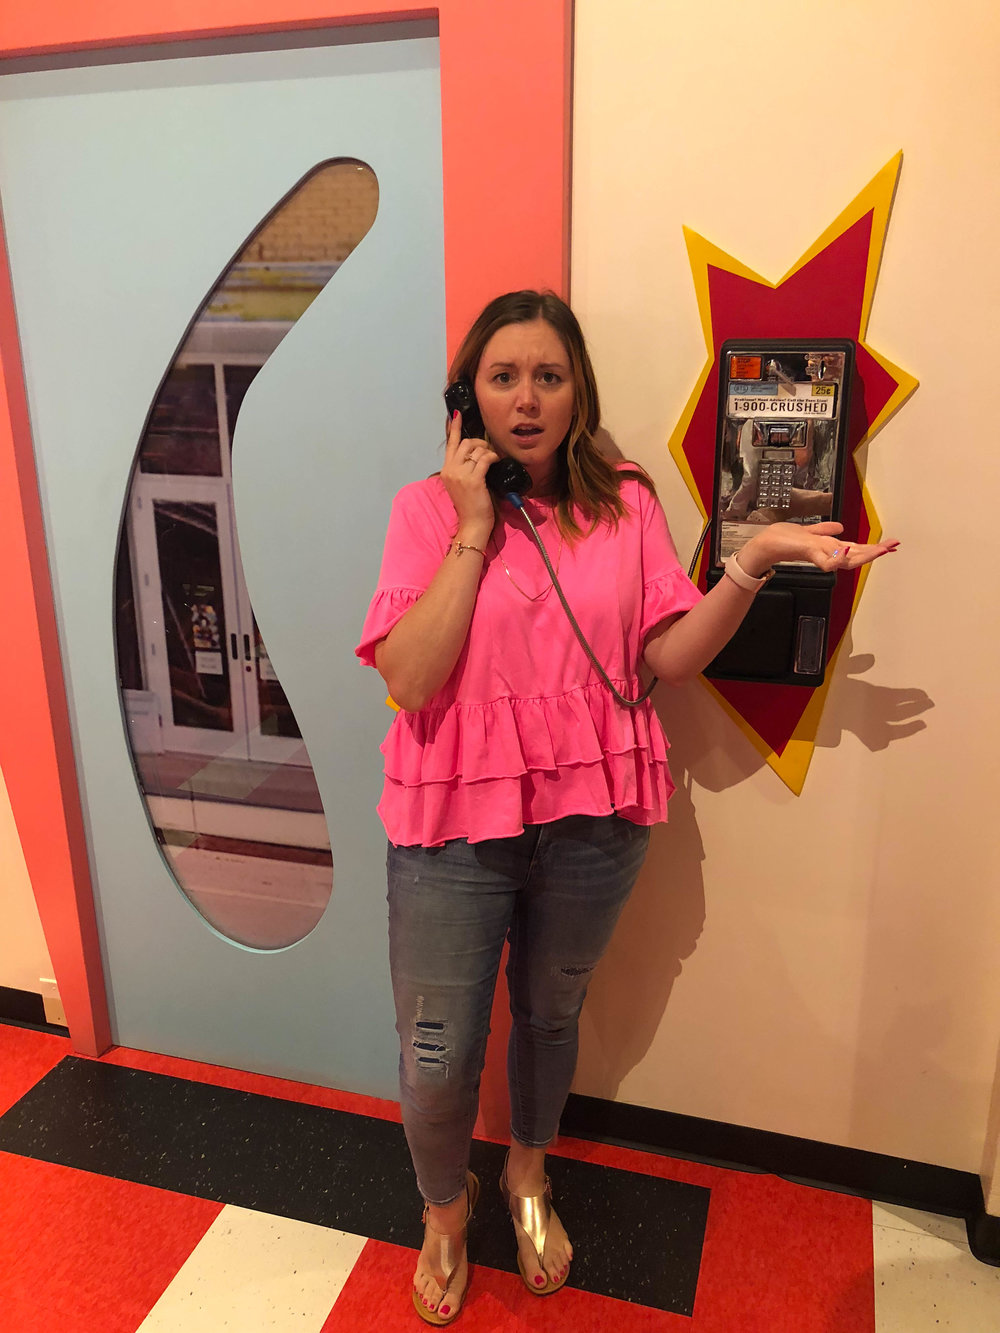 Saved By the Max - Saved by the Bell Pop-up Pay Phone